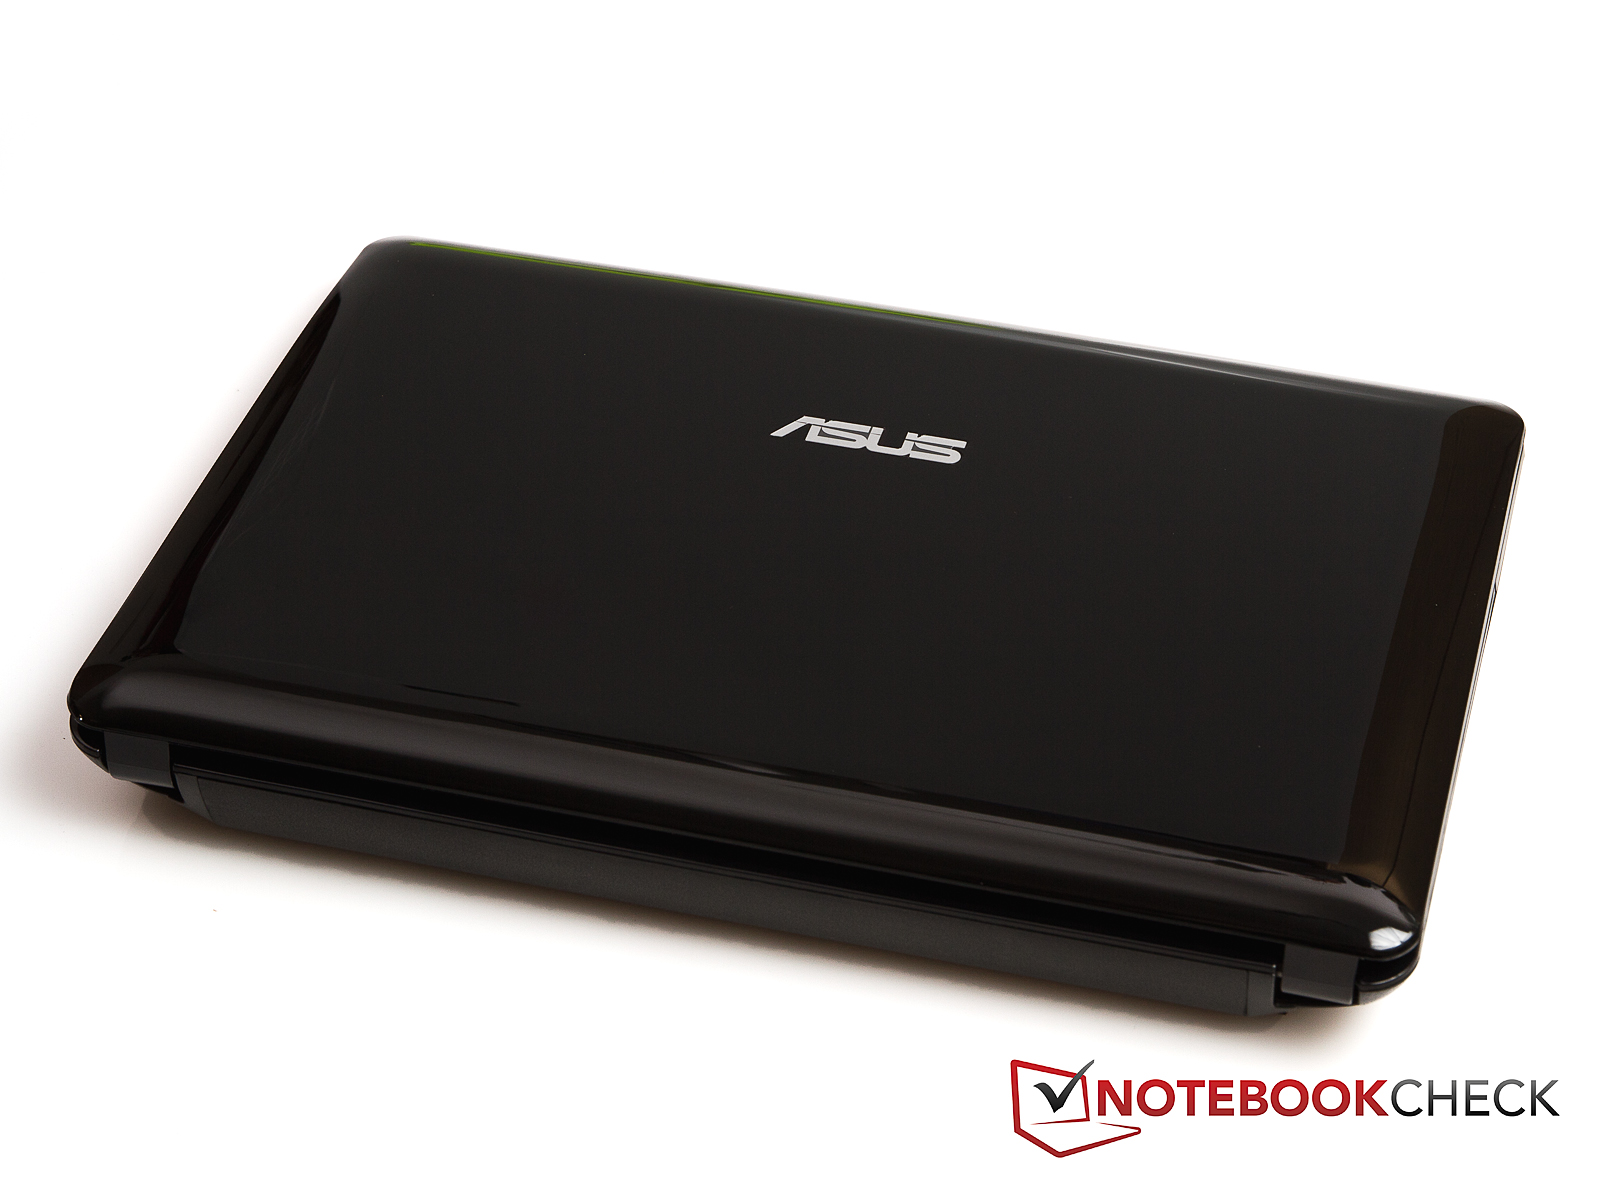 ASUS EEE PC 1015PX VIDEO CONTROLLER DRIVER WINDOWS 7 (2019)